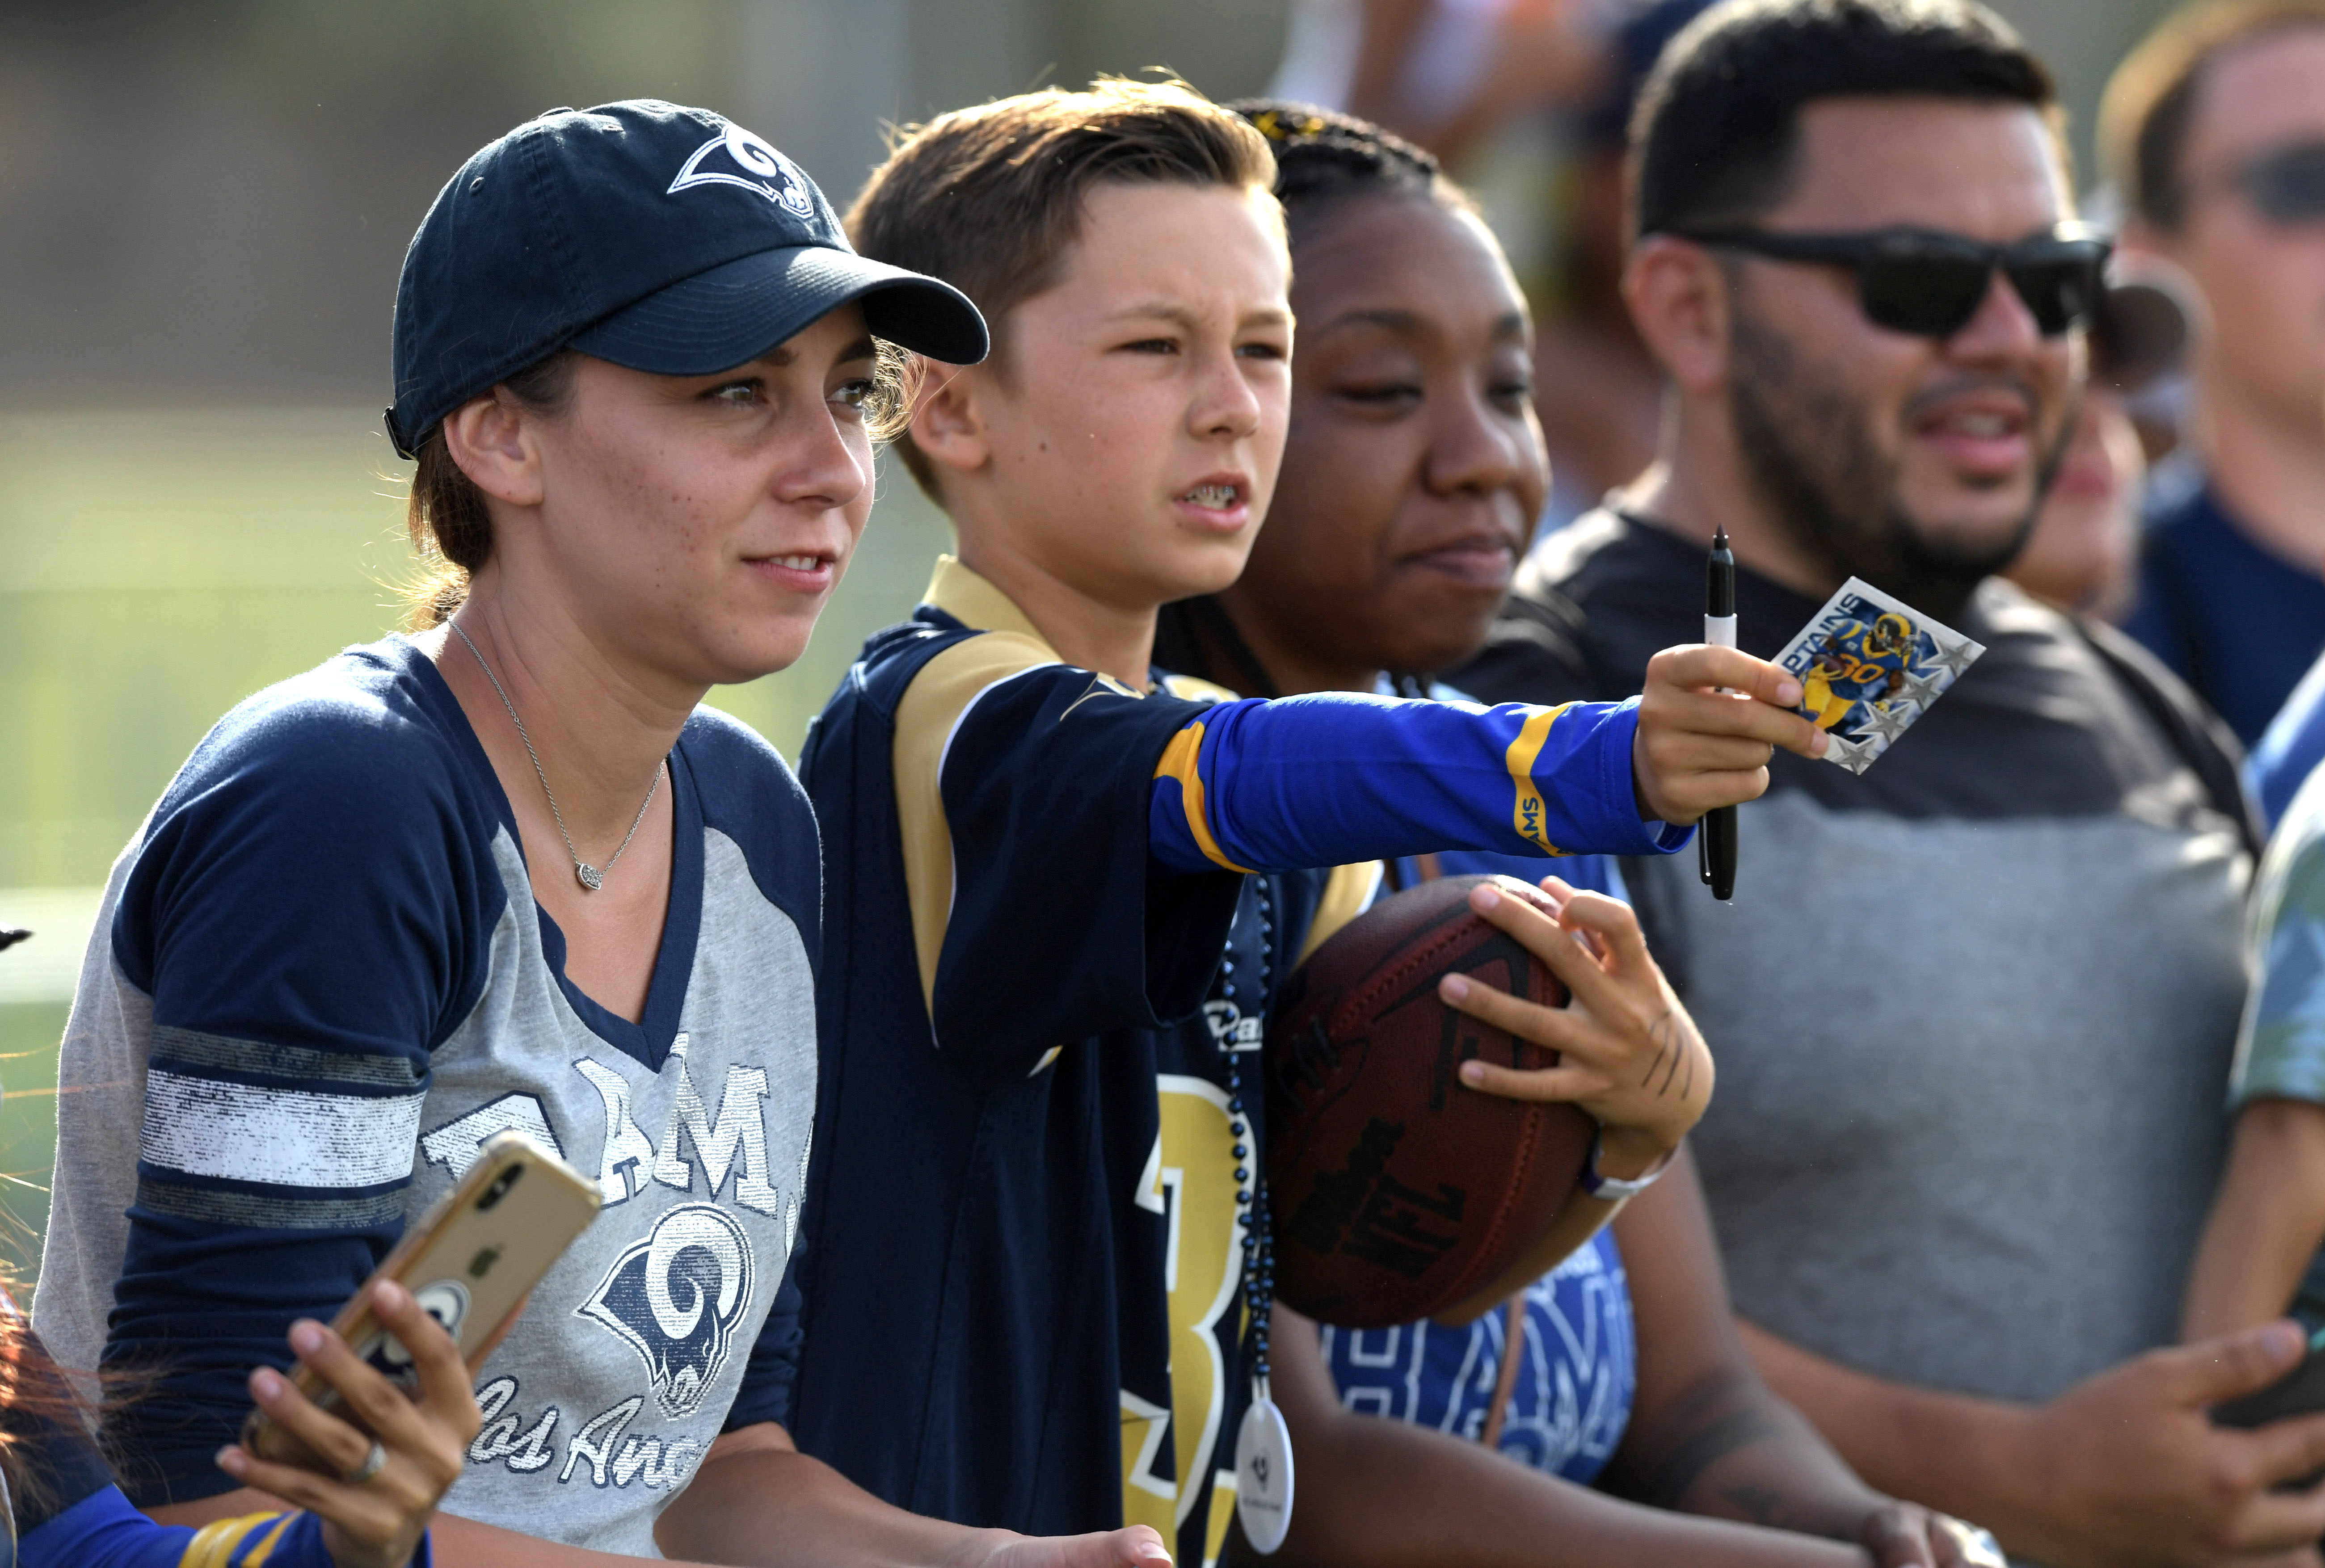 Los Angeles Rams fans wait for autographs during training camp at UC Irvine, Jul. 30, 2019.